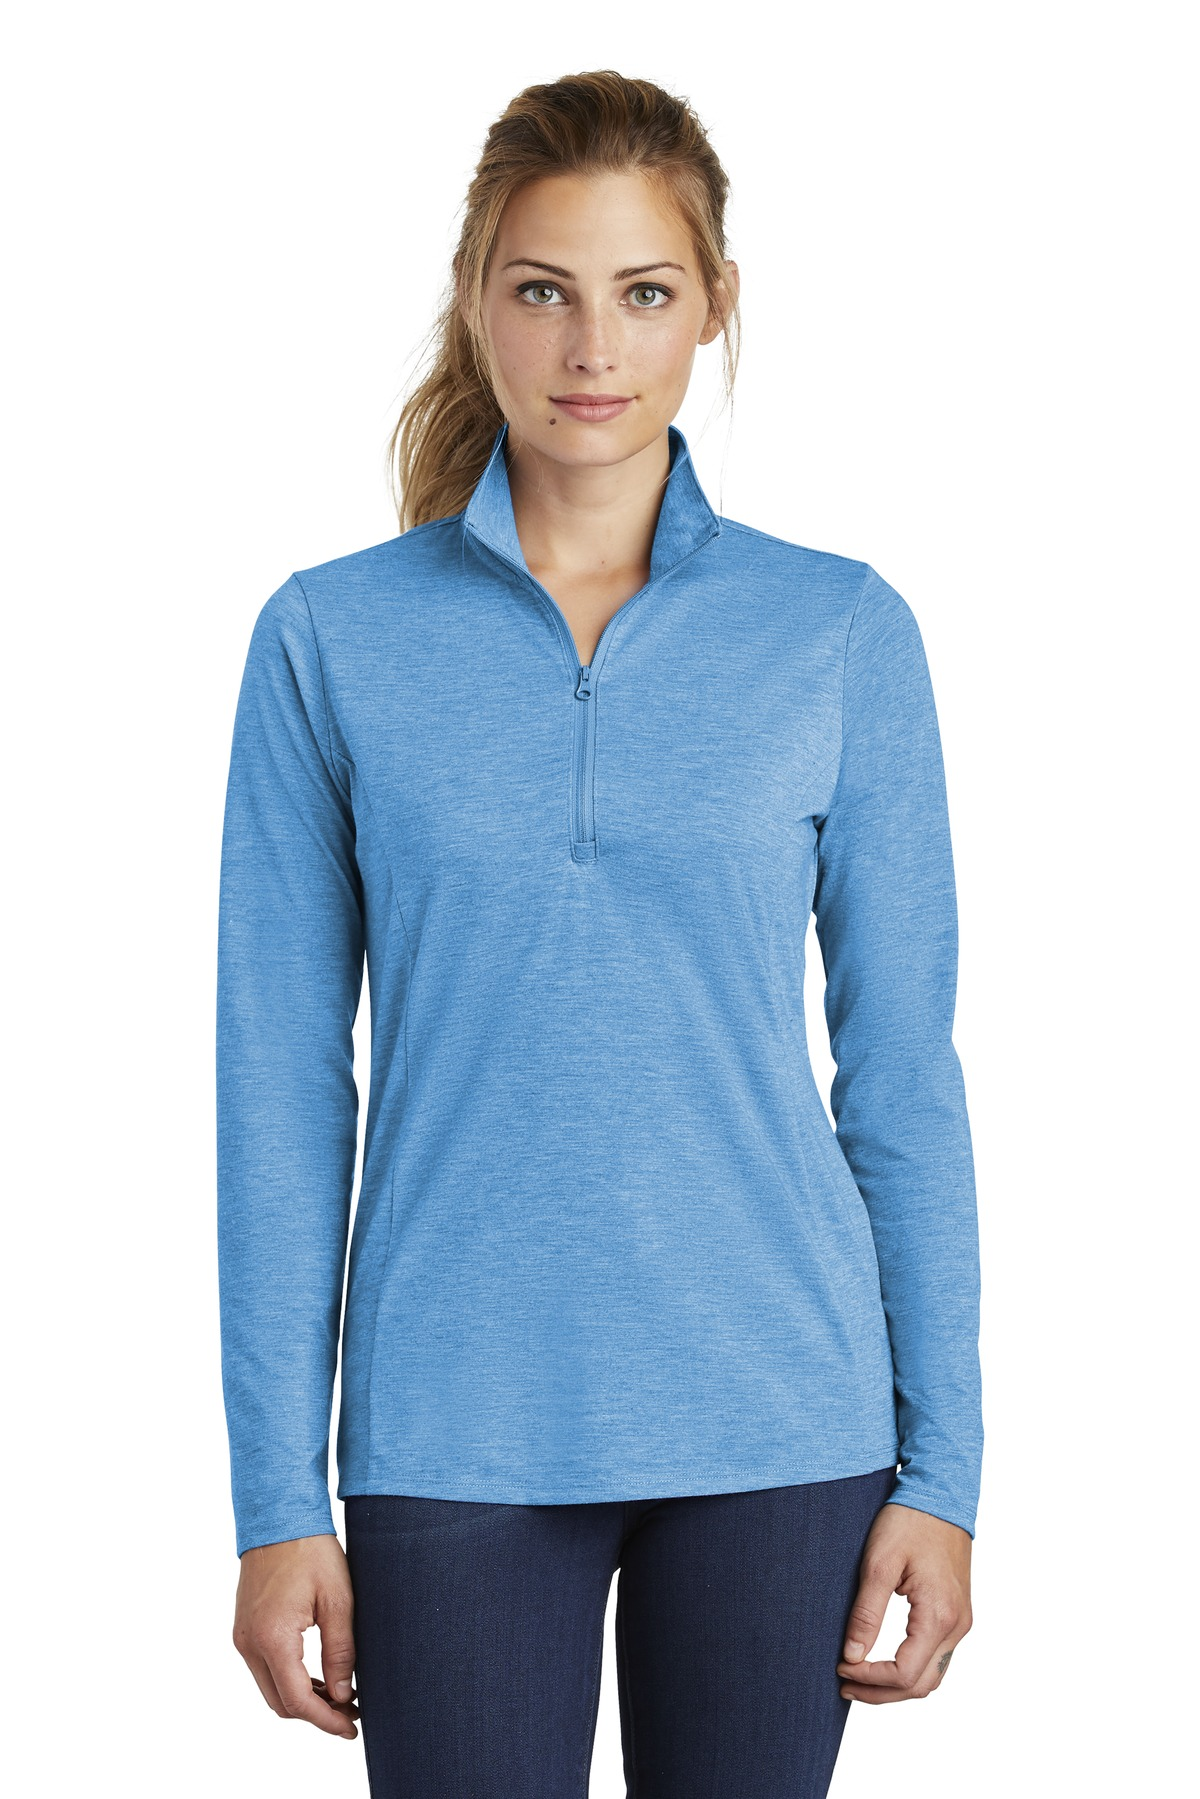 Sport-Tek  ®  Ladies PosiCharge  ®  Tri-Blend Wicking 1/4-Zip Pullover. LST407 - Pond Blue Heather